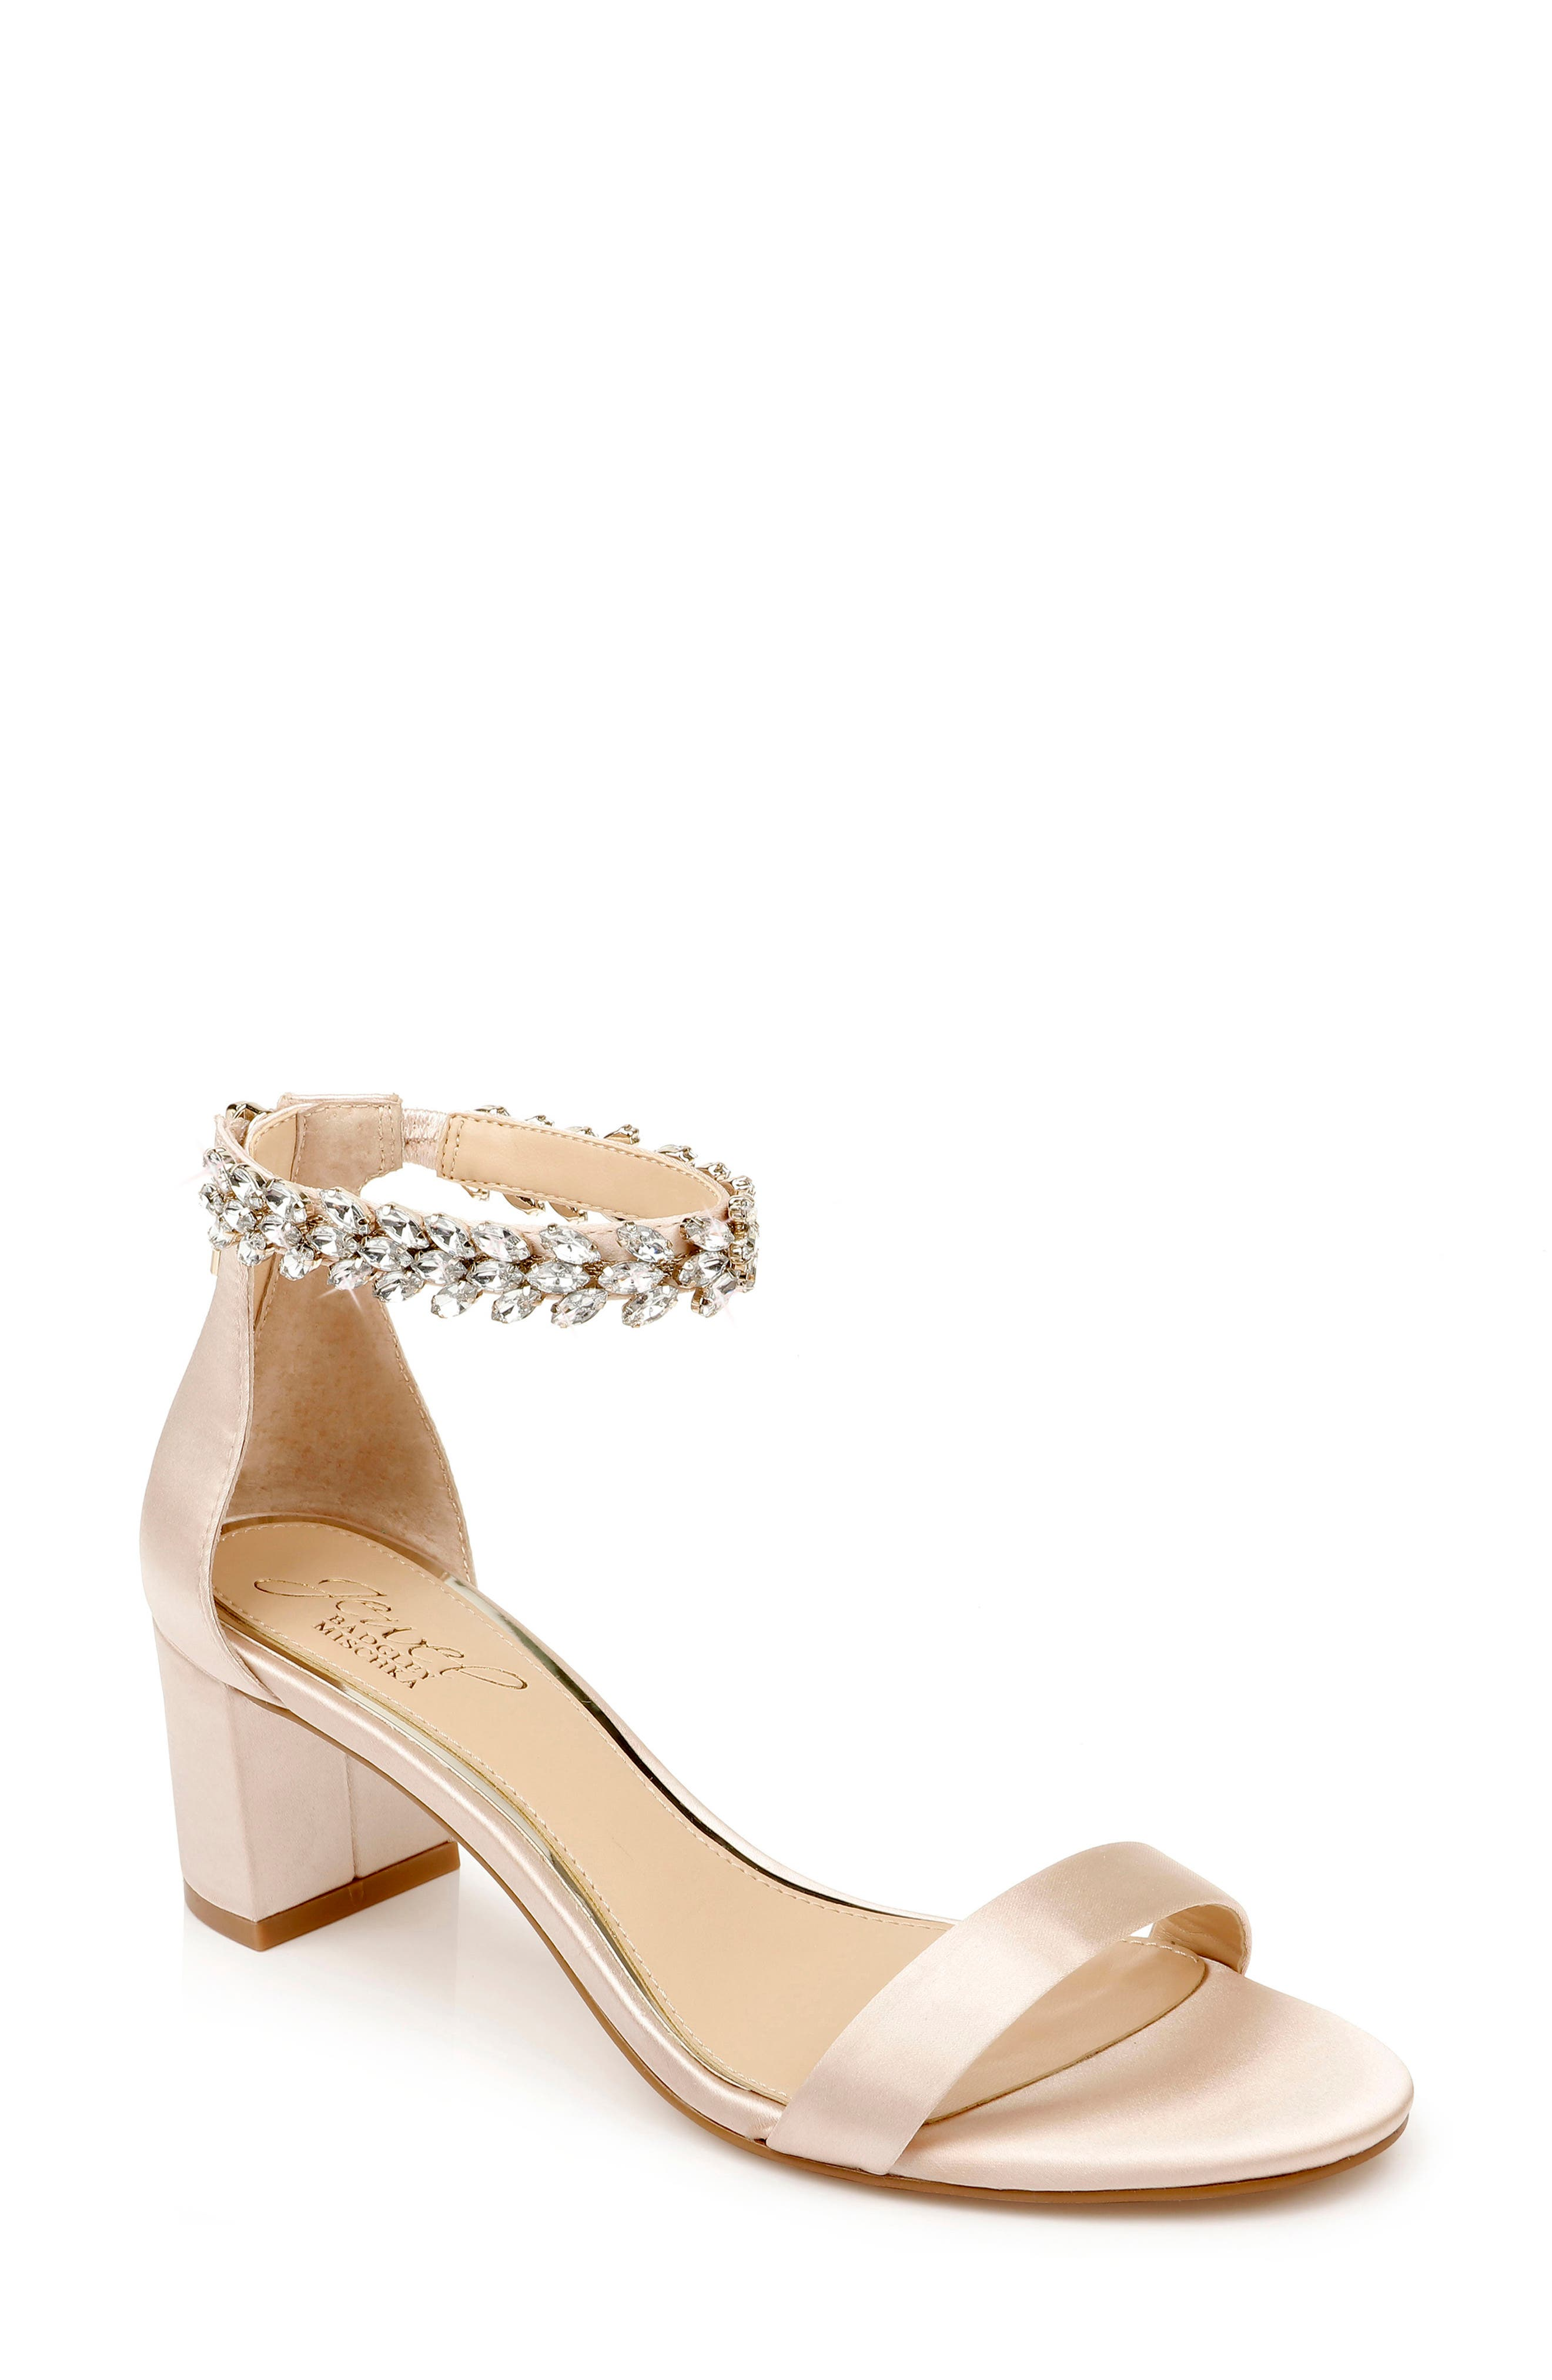 Sparkling crystals embellish an event-ready, ankle-strap sandal made with a half-moon heel for a sure step on the dance floor. Style Name: Jewel Badgley Mischka Bradley Ankle Strap Sandal (Women). Style Number: 5913719. Available in stores.